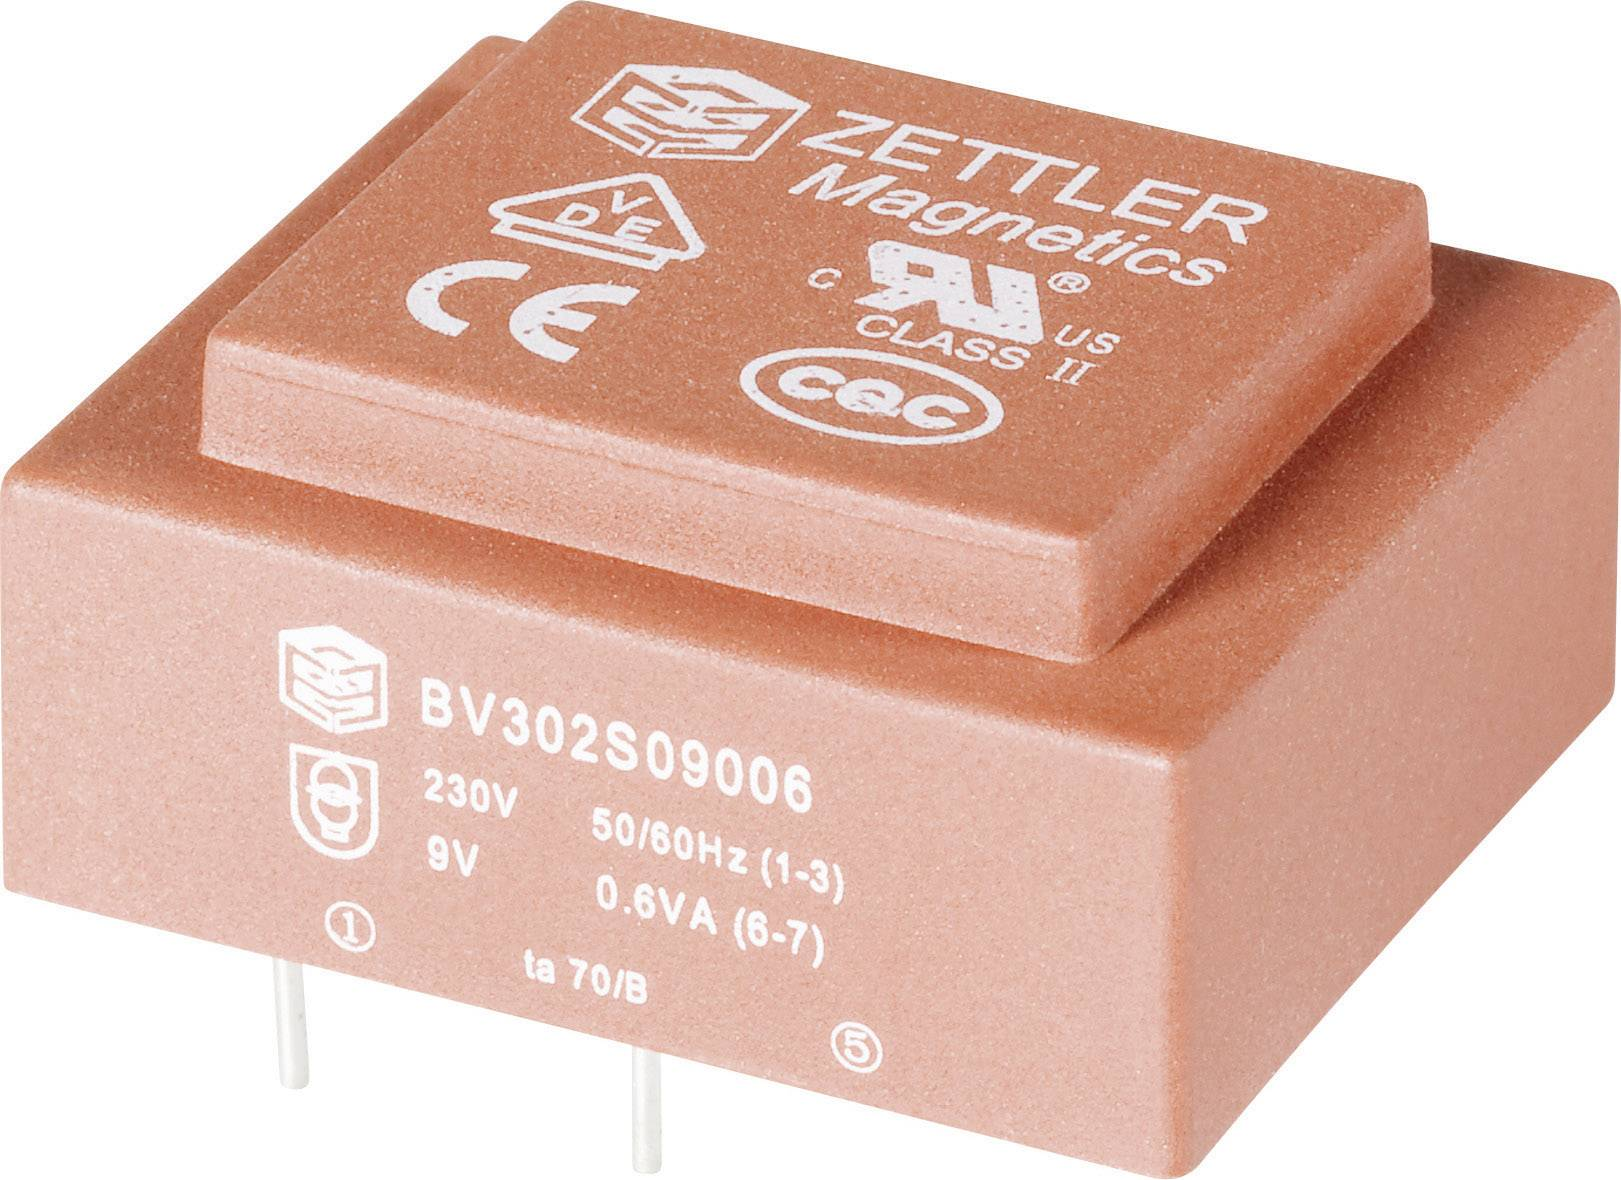 Transformátor do DPS Zettler Magnetics El30, 230 V/2x 6 V, 2x 50 mA, 1,5 VA